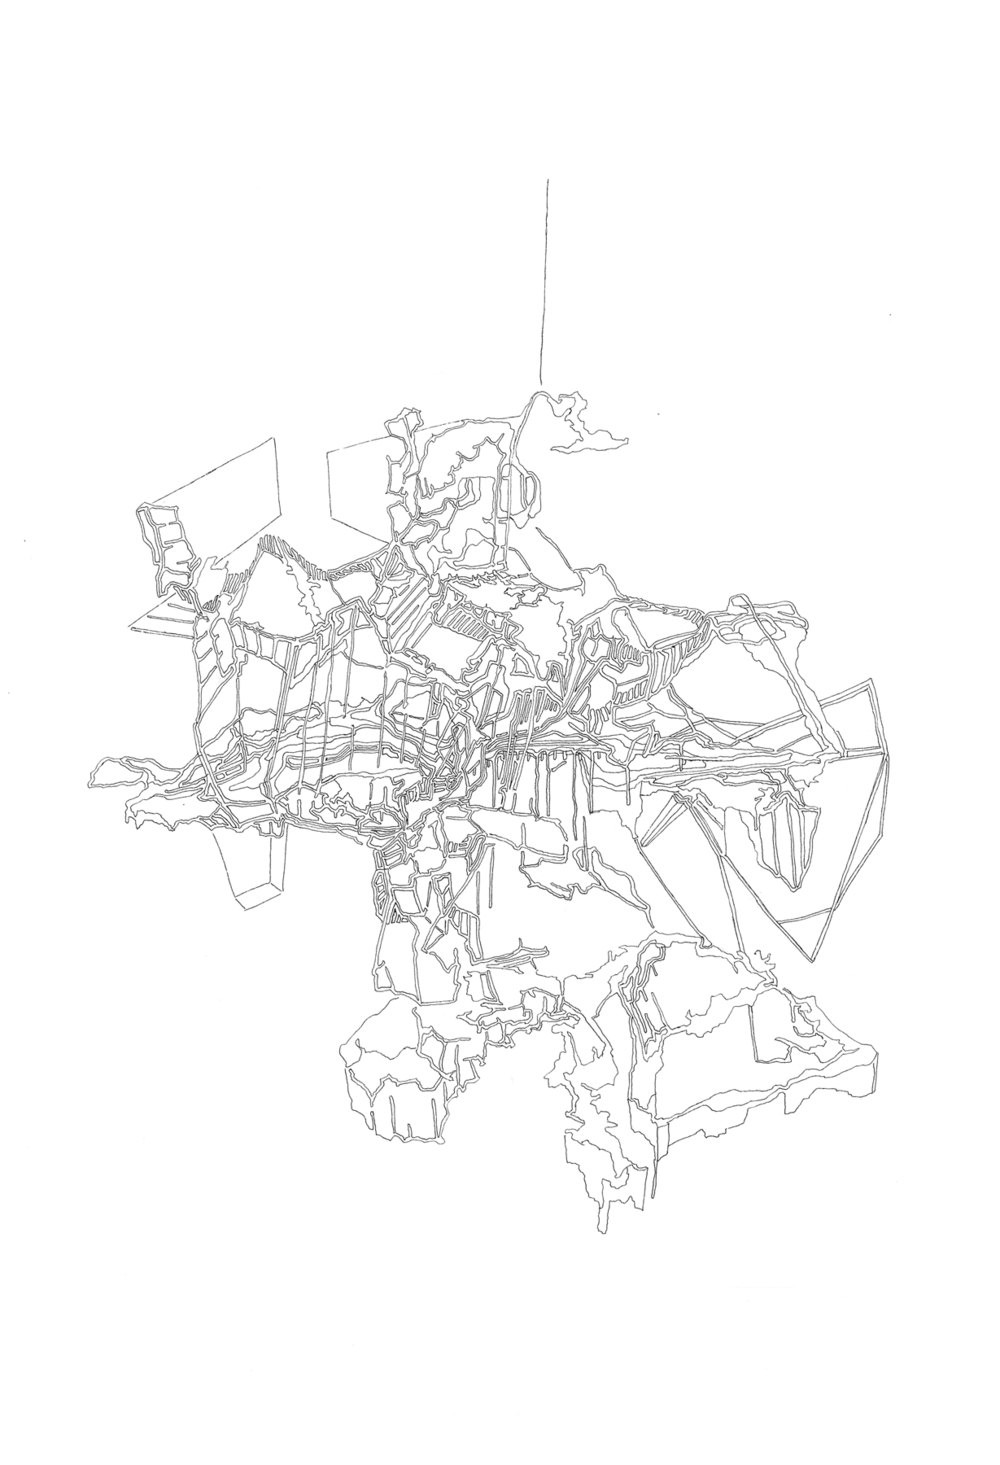 lucidstructure003|1800 copy.png